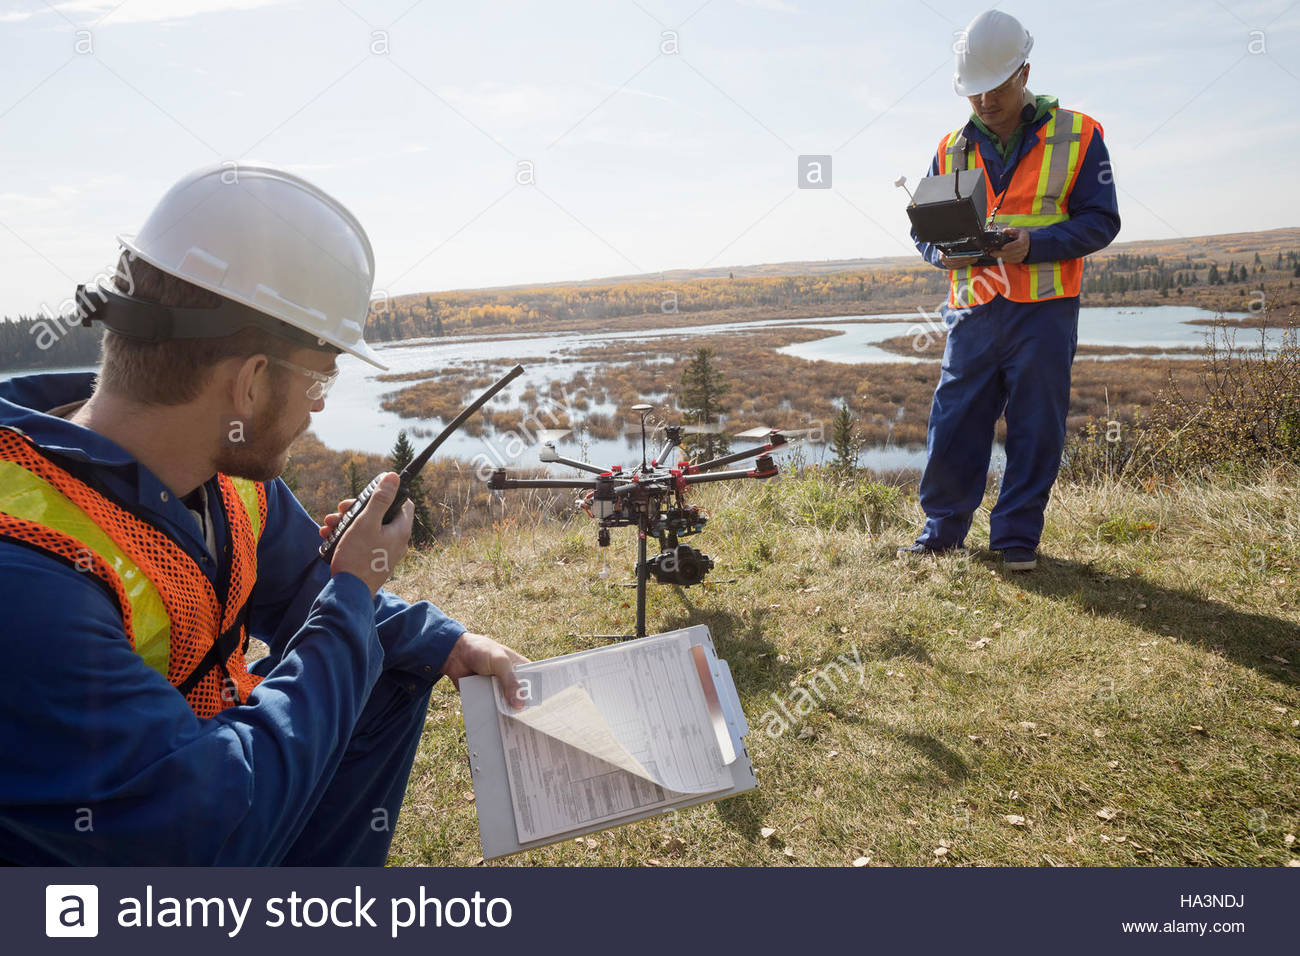 Surveyors with drone equipment and walkie-talkie on sunny hilltop overlooking lake - Stock Image